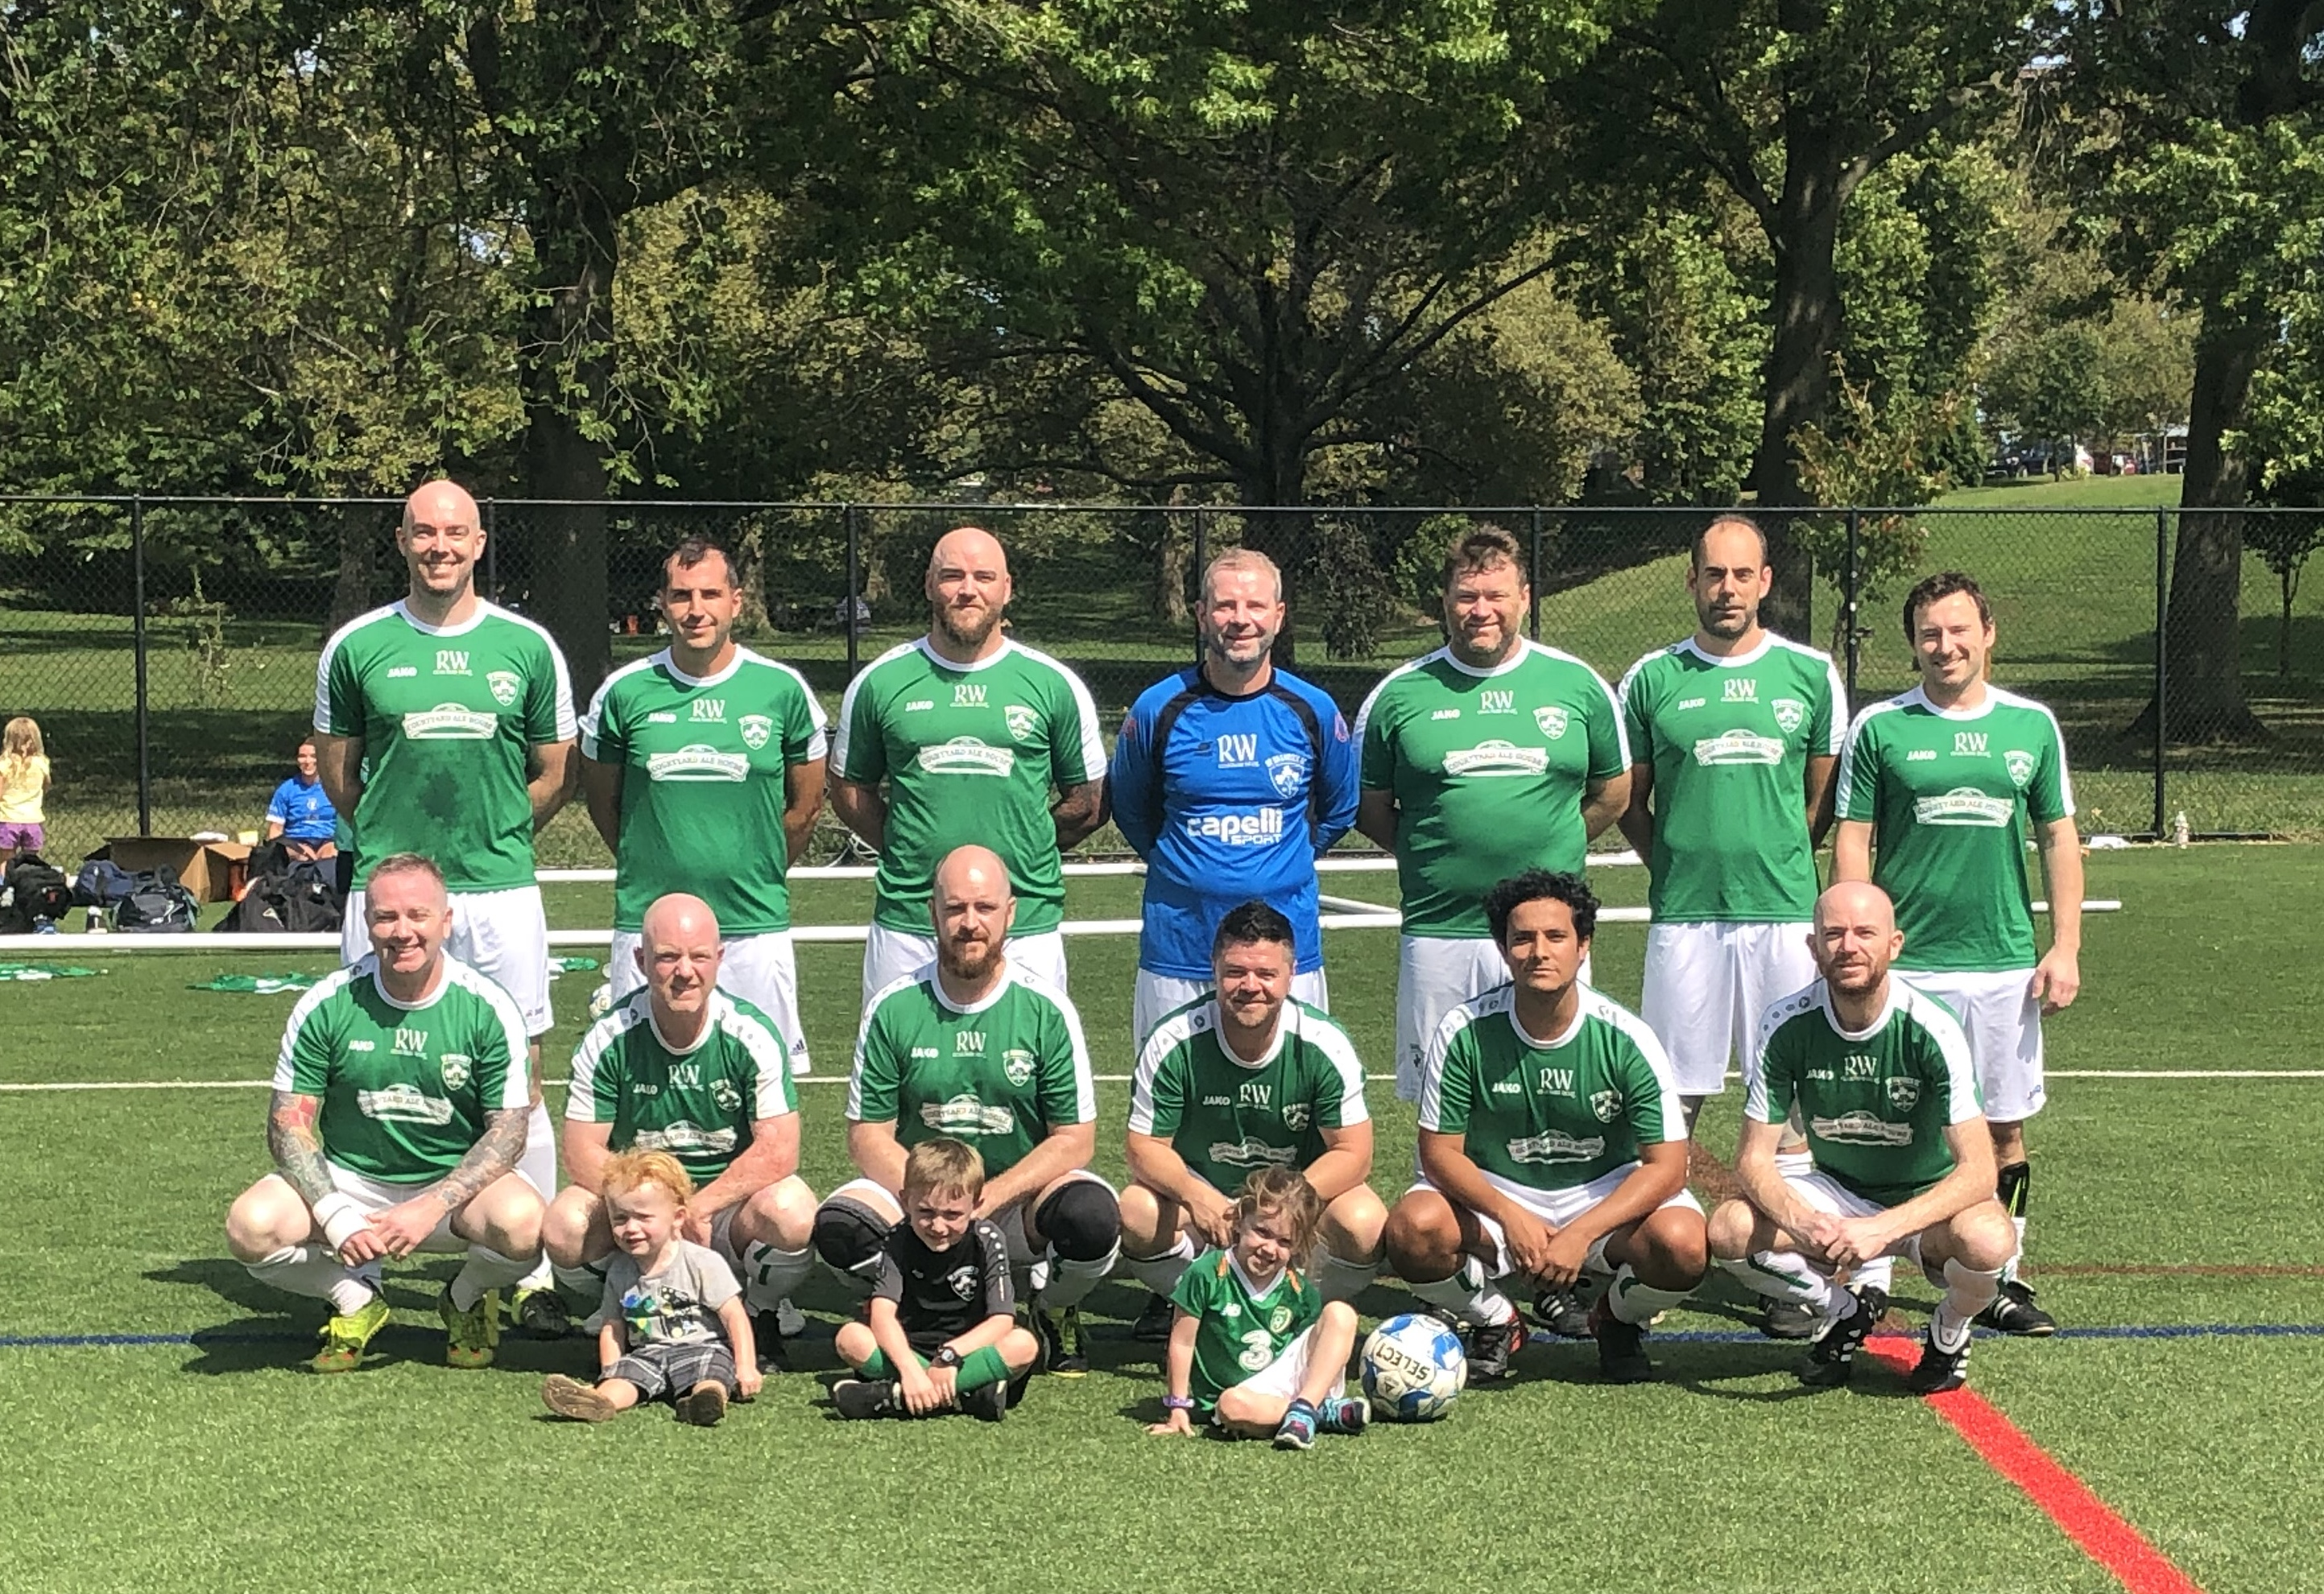 2019-09-08 Legends v greeks